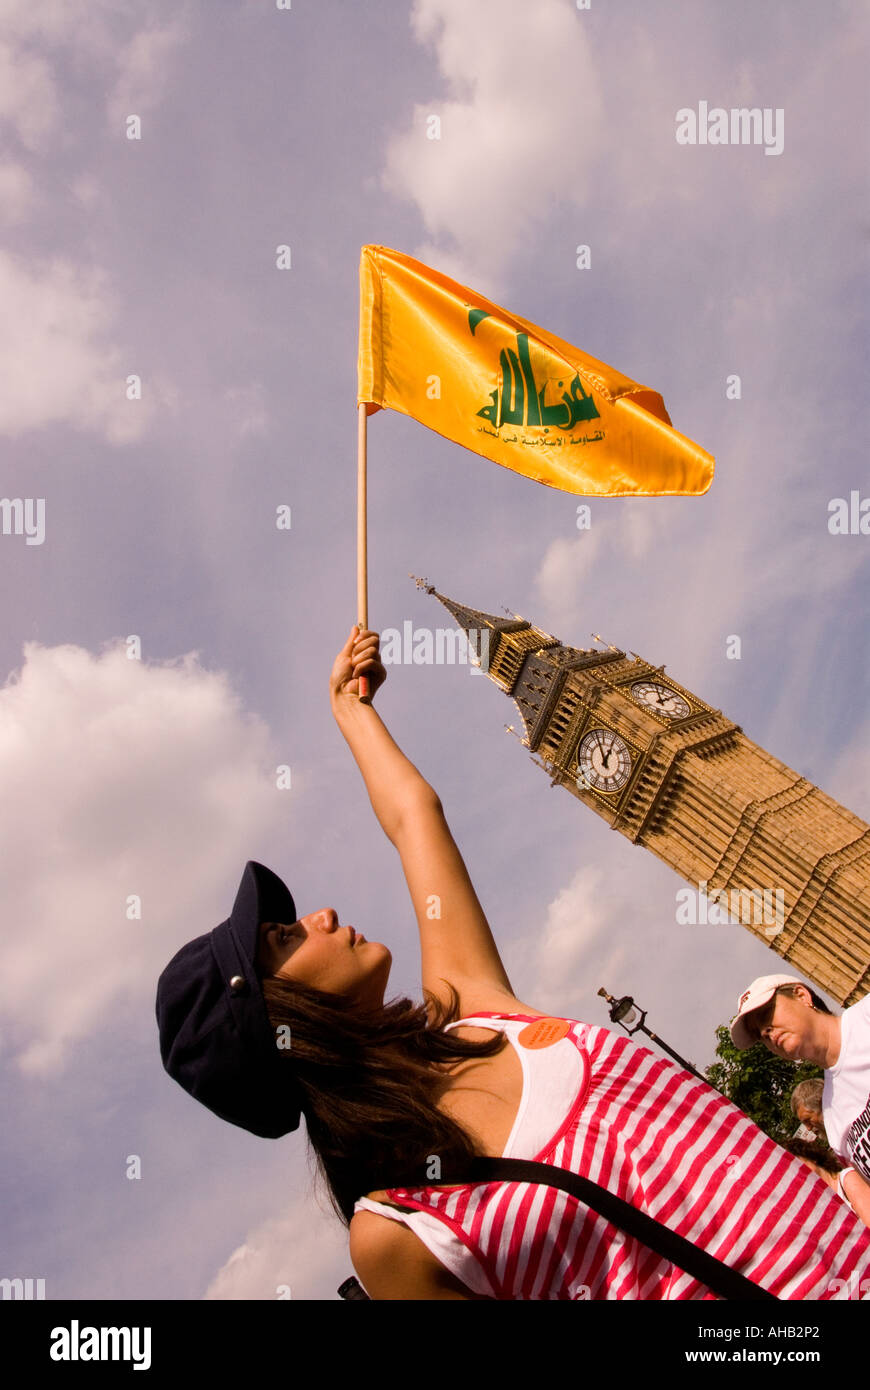 Young Muslim protester wielding yellow flag of Hizbollah during Stop the War s march and demo against israeli agression - Stock Image